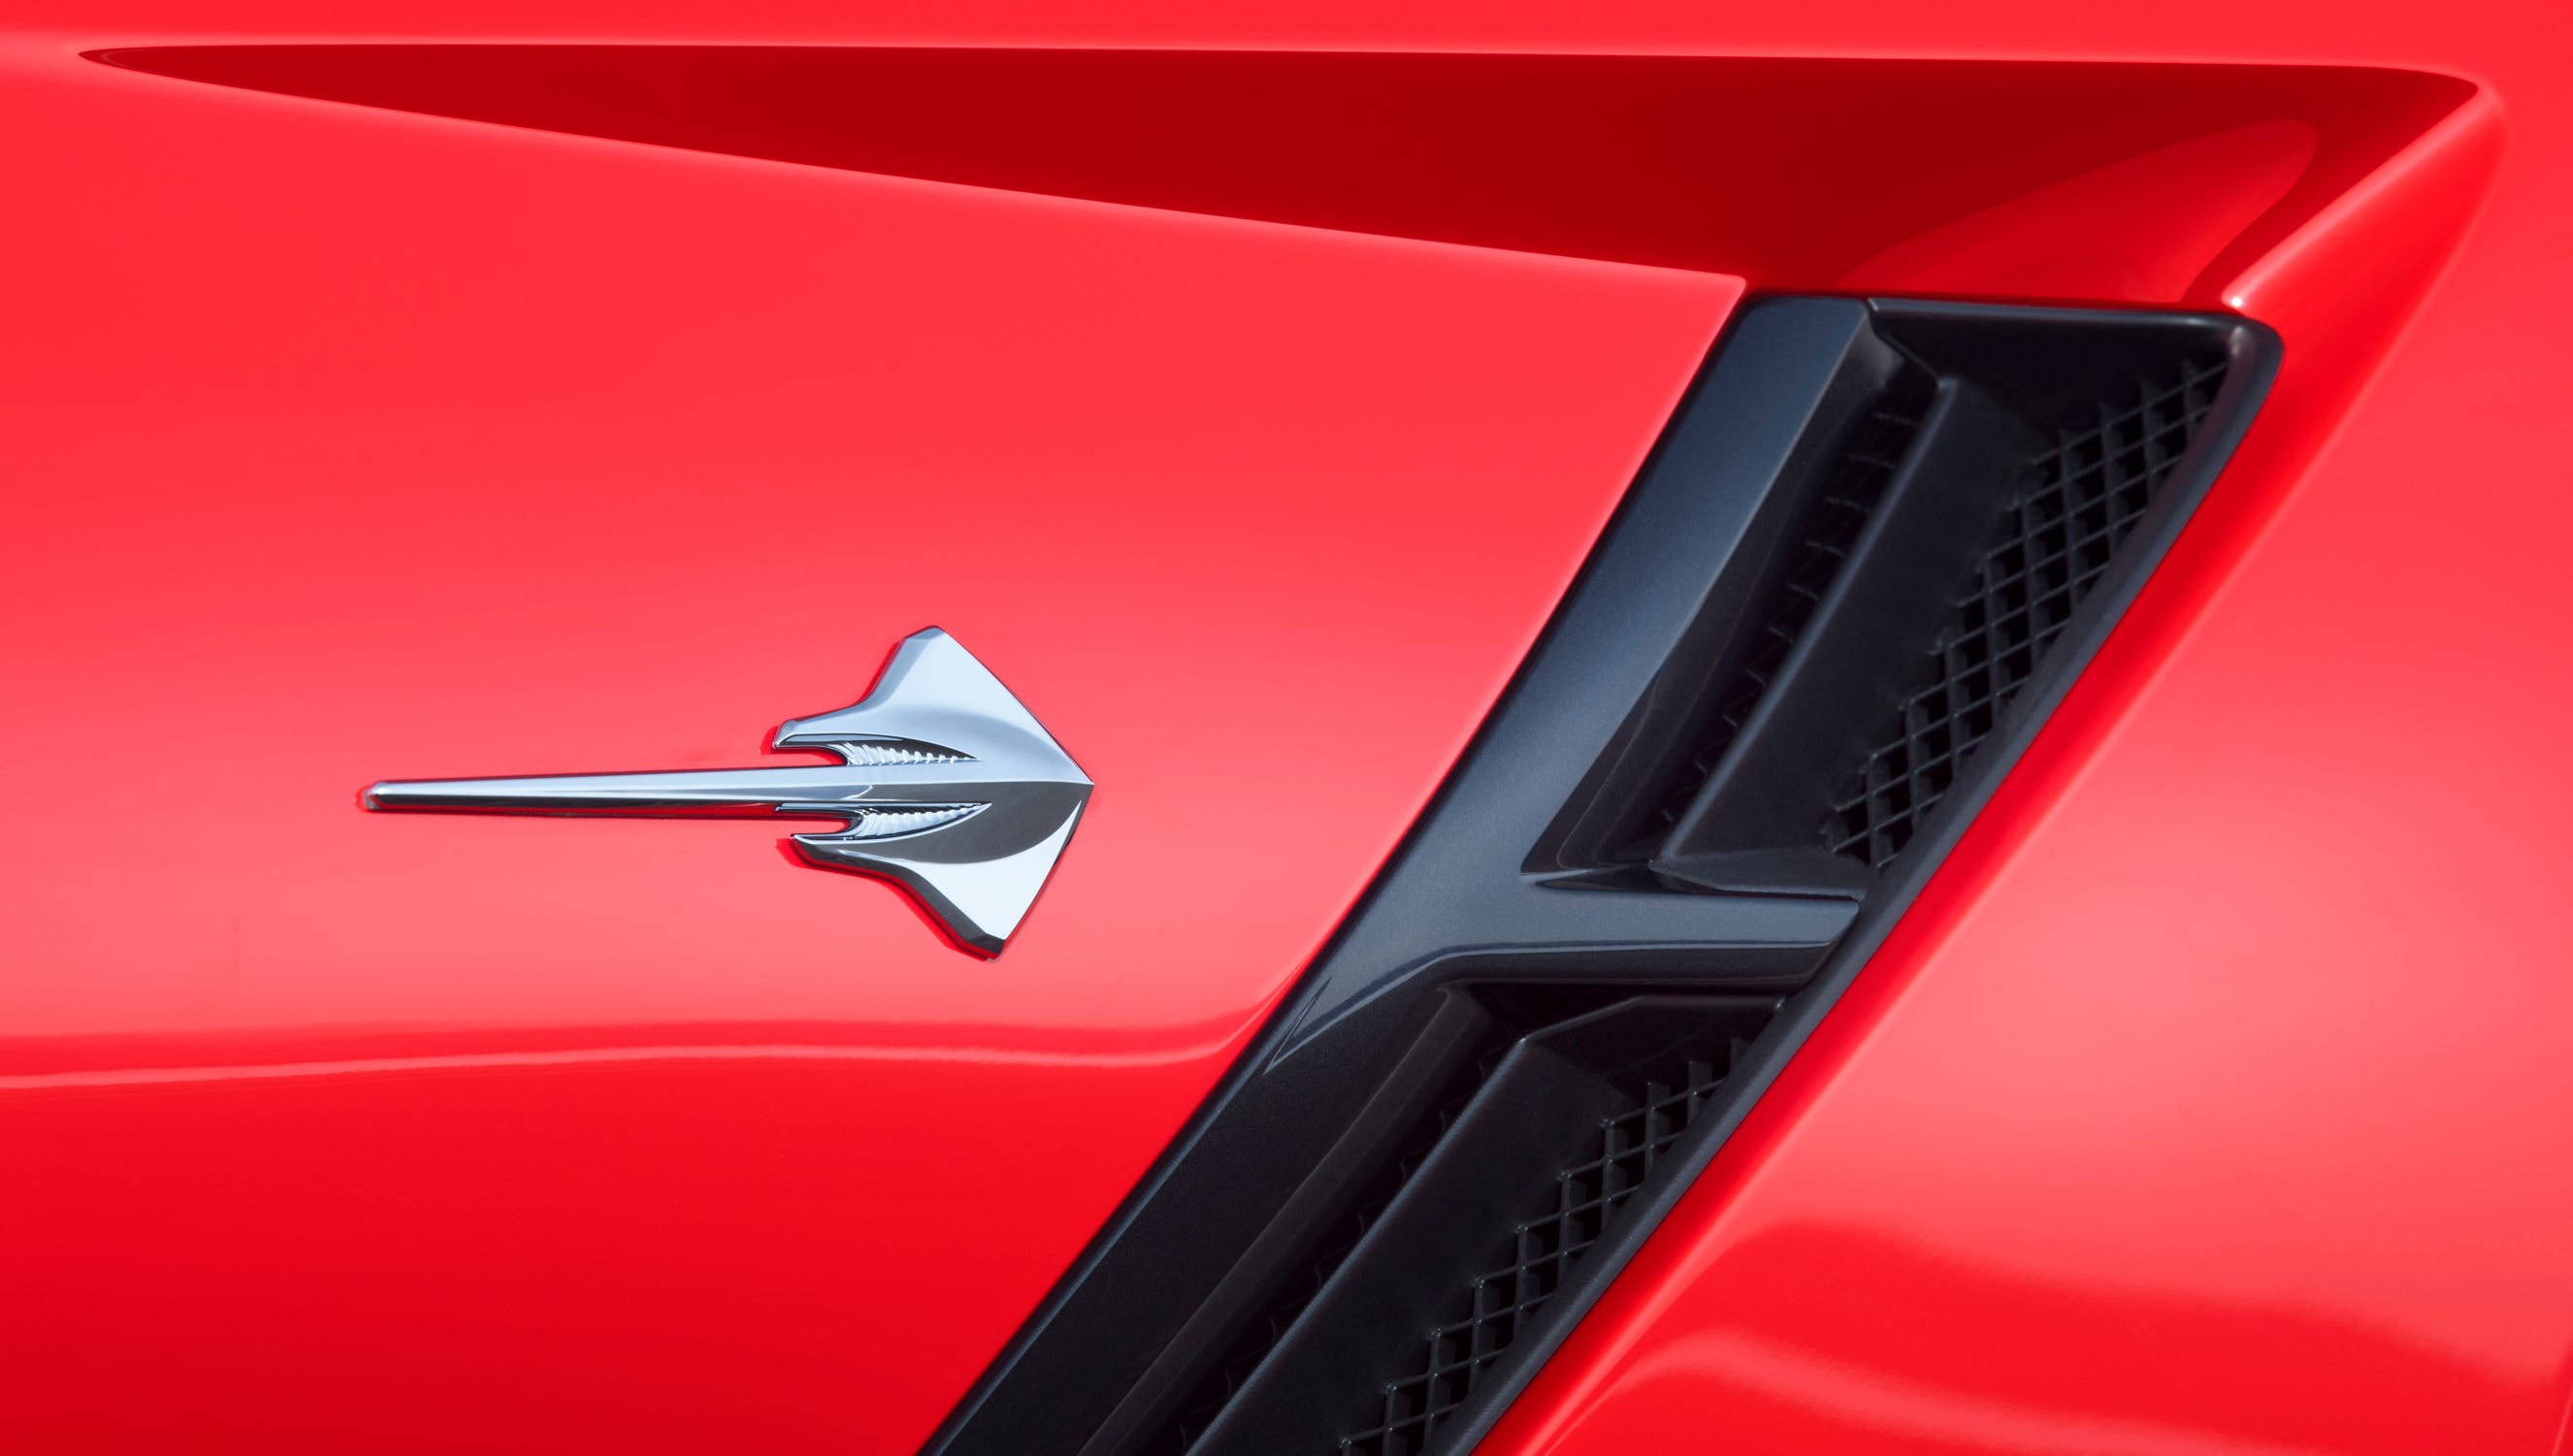 The 2014 Corvette's Stingray symbol behind the functional front fender vents.